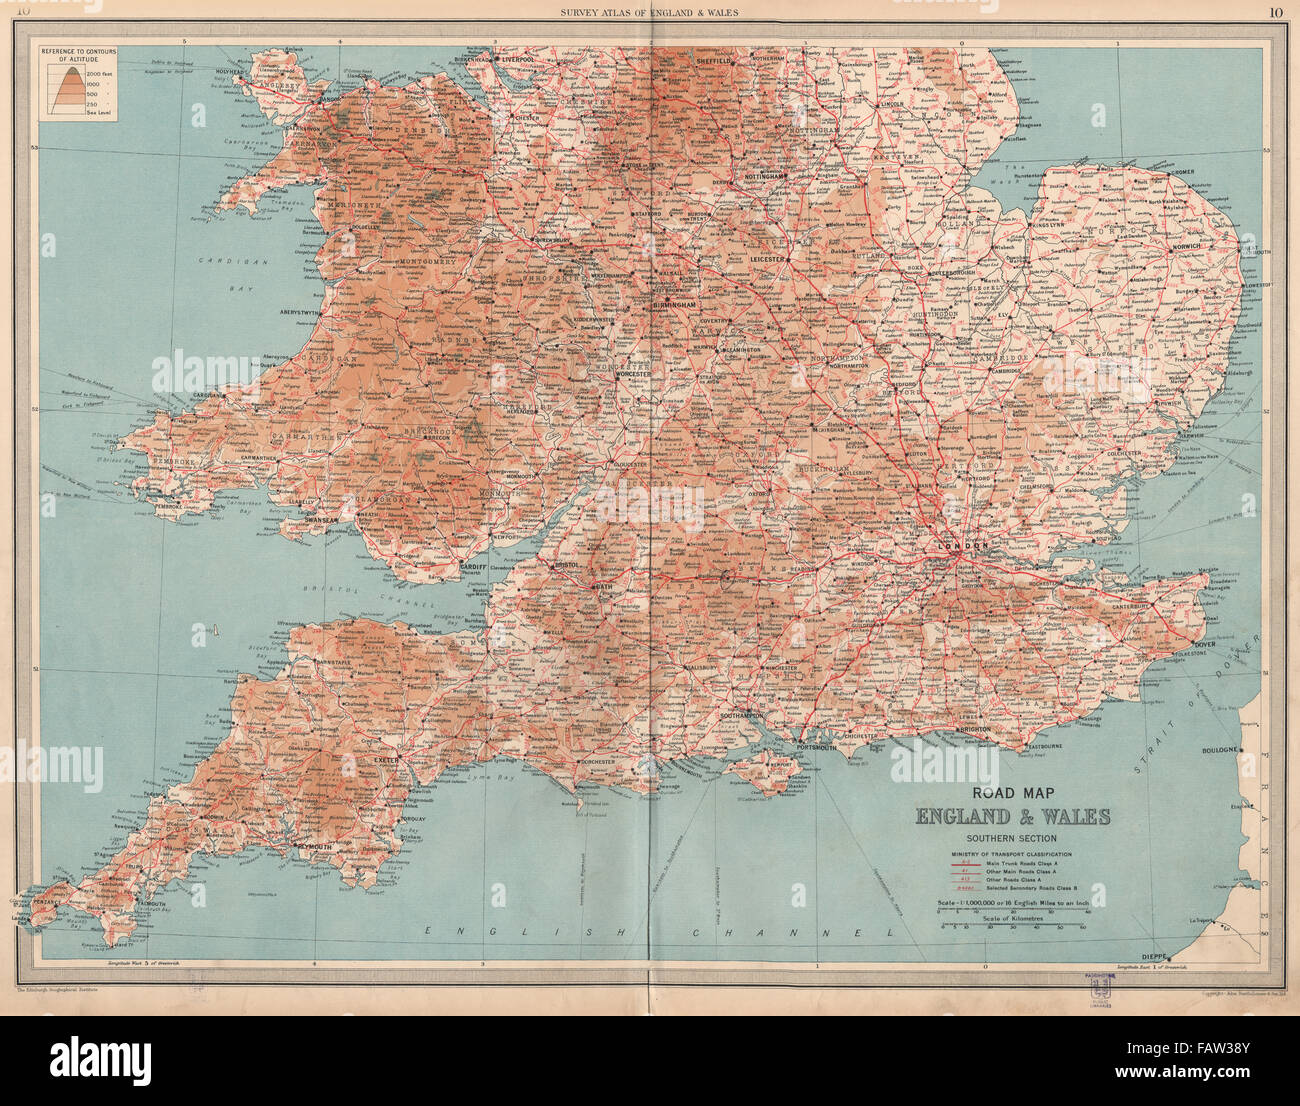 Map Of Southern England And Wales.England Wales South Road Map A B Roads Pre Motorways Large